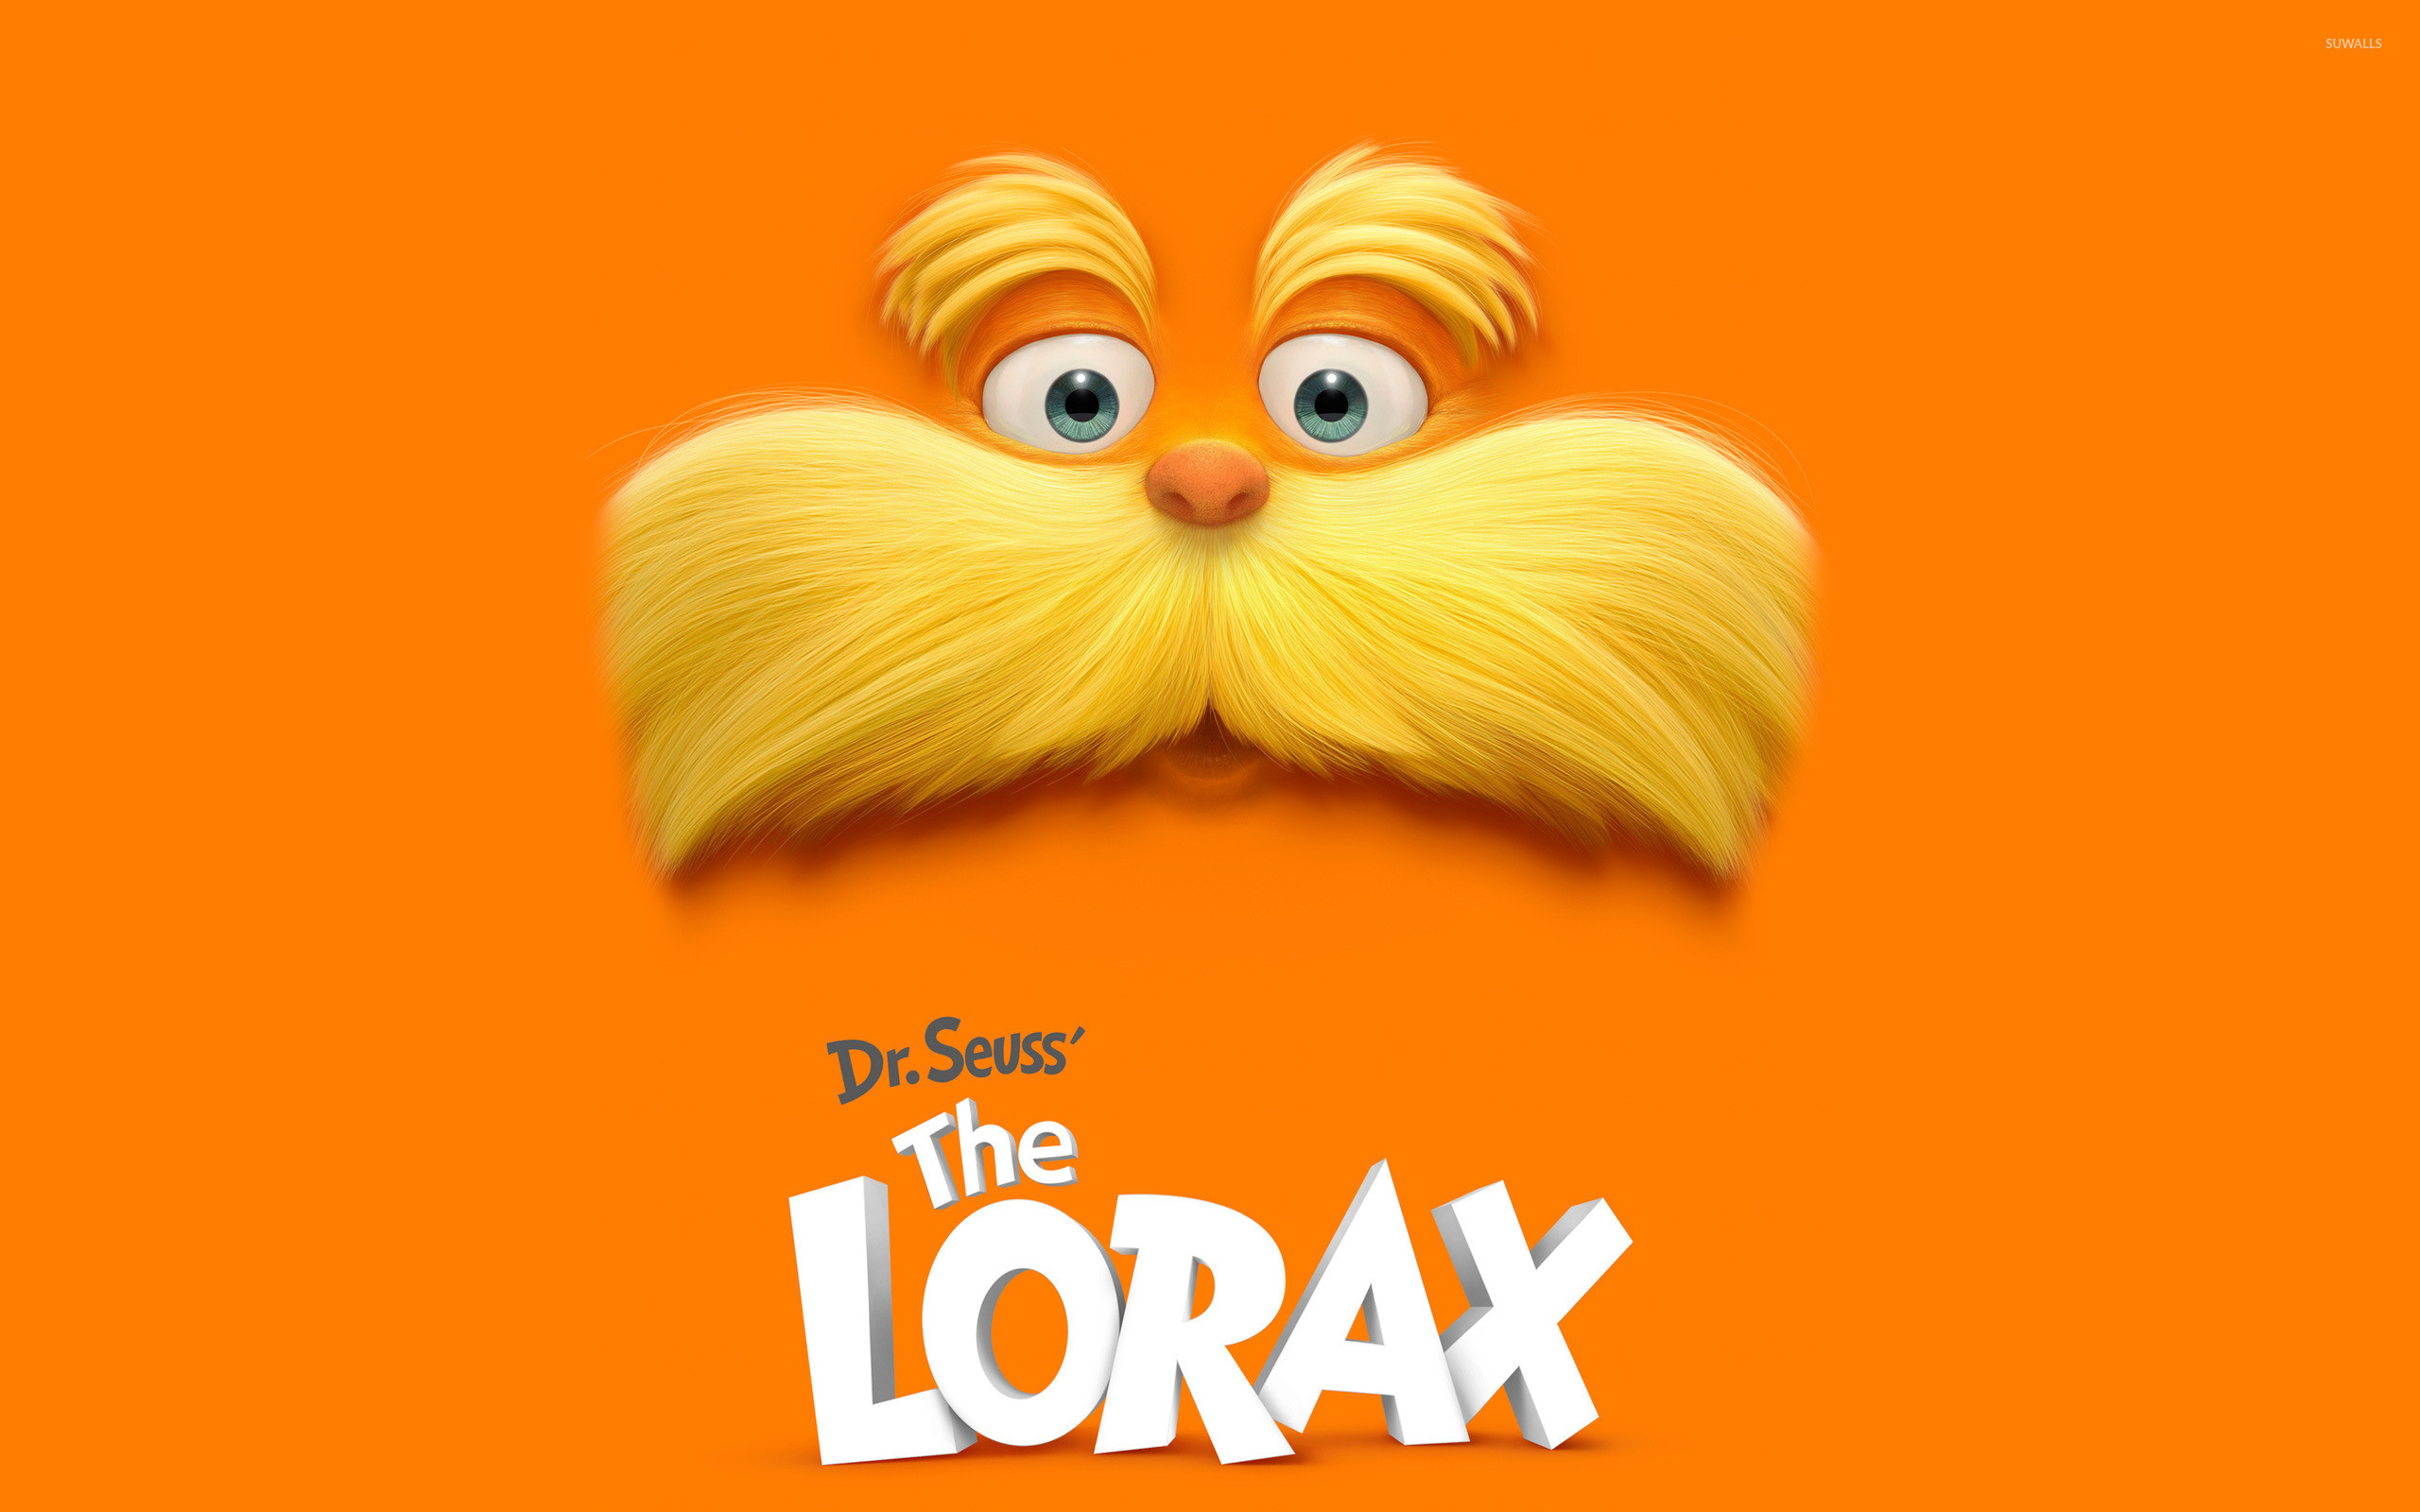 Res: 2560x1600, Dr. Seuss' The Lorax wallpaper